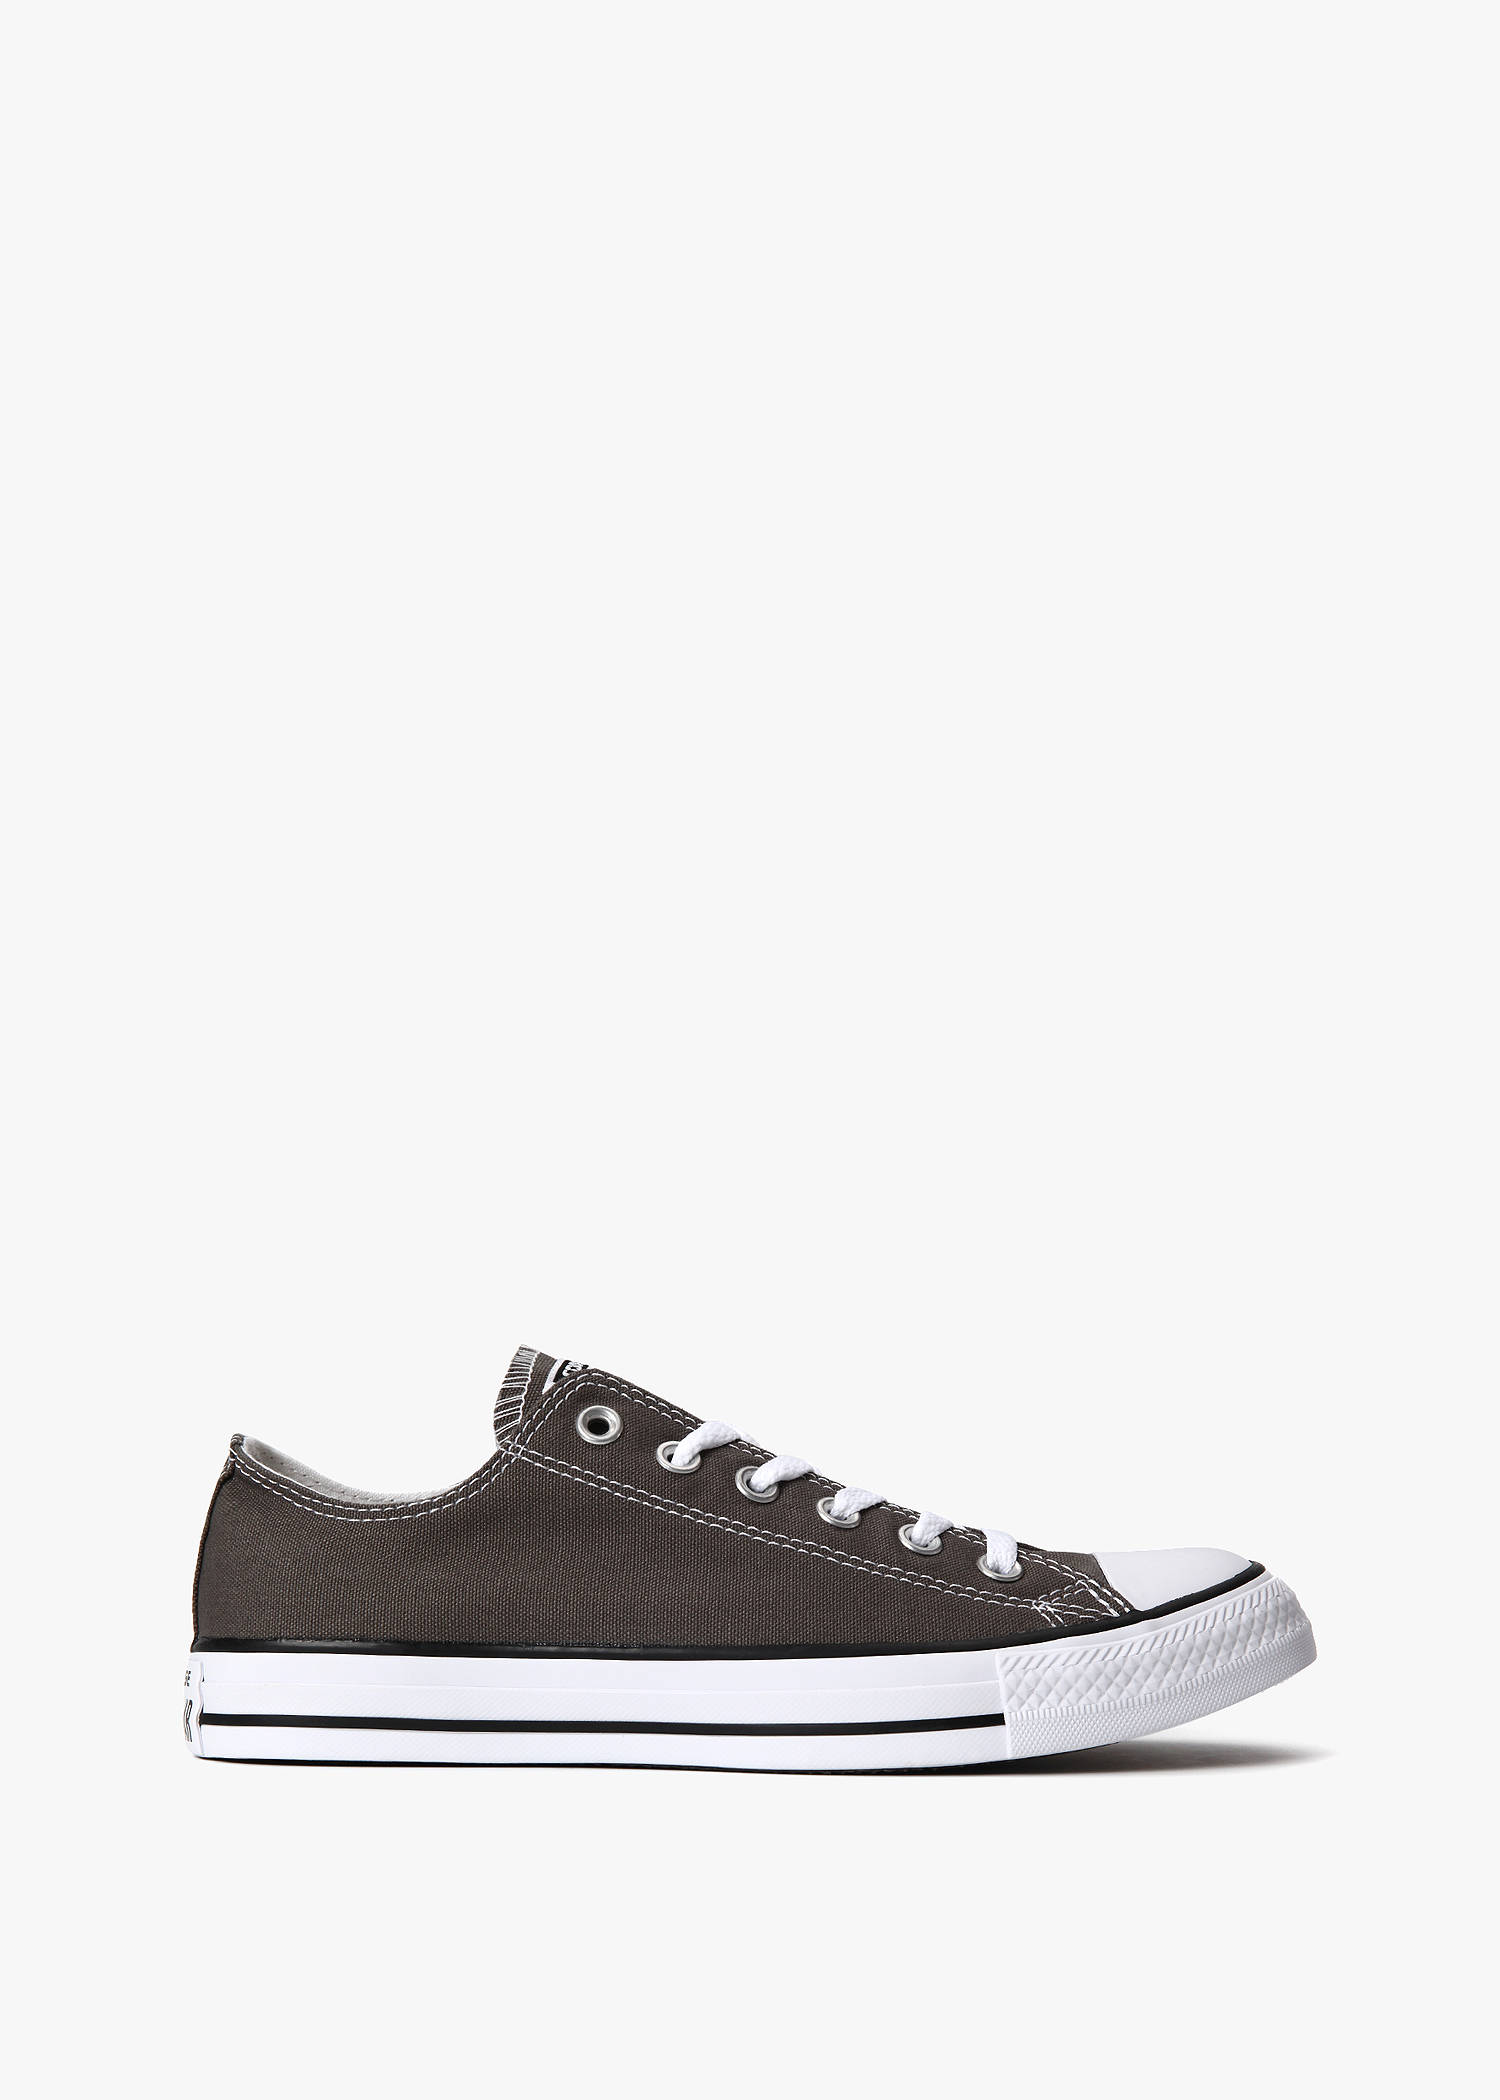 Converse Chuck Taylor All Star Core Charcoal Low Top